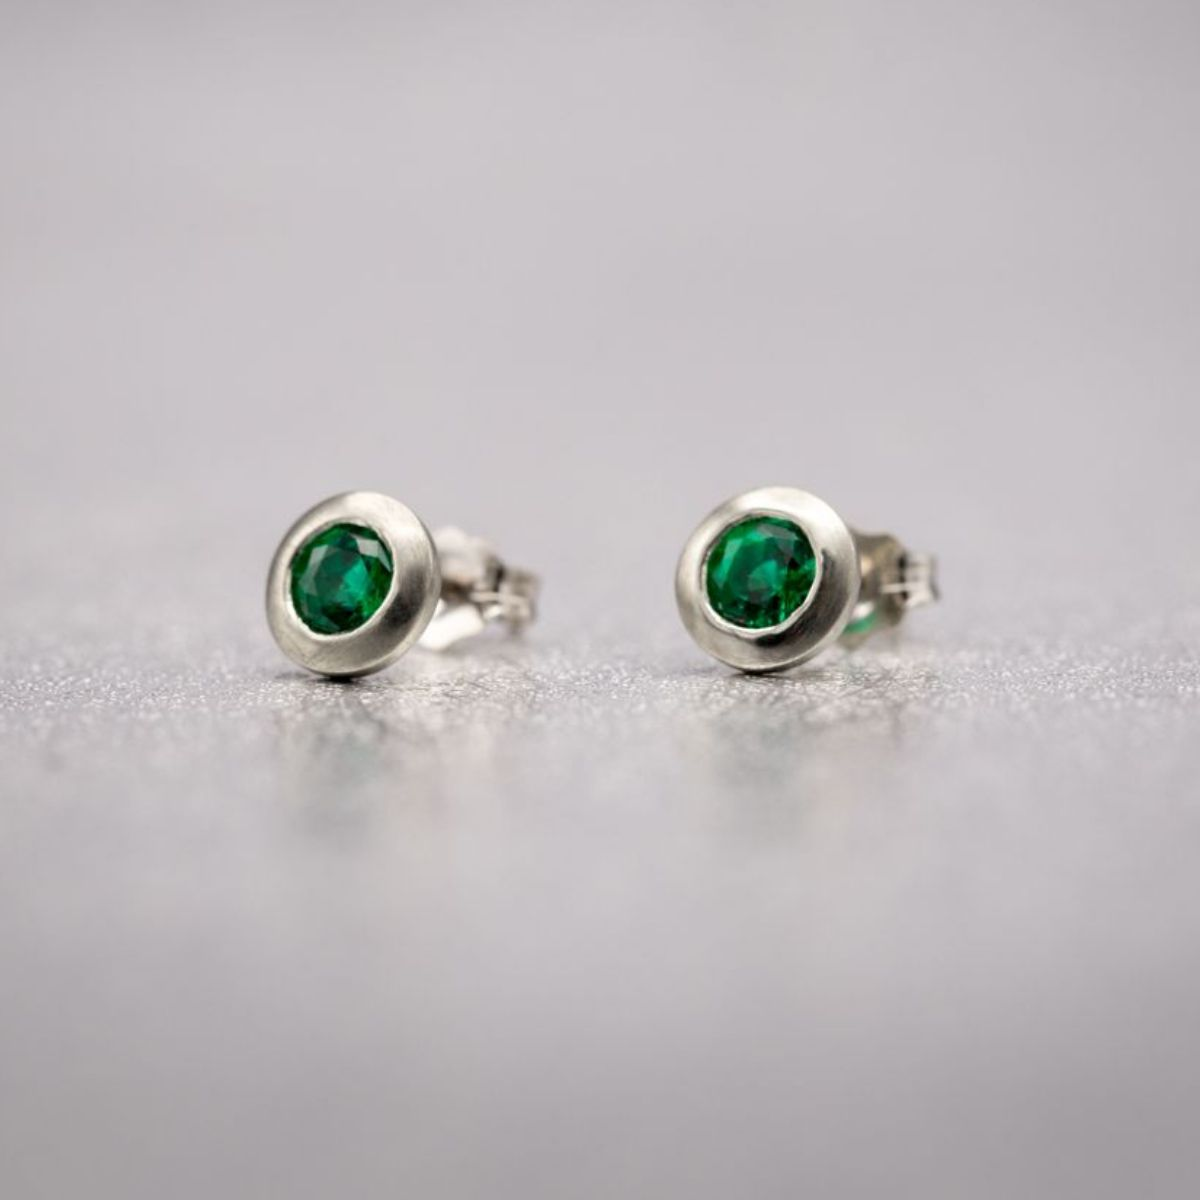 White Gold Studs With Bezel Set Emeralds And A Lightly Brushed Finish